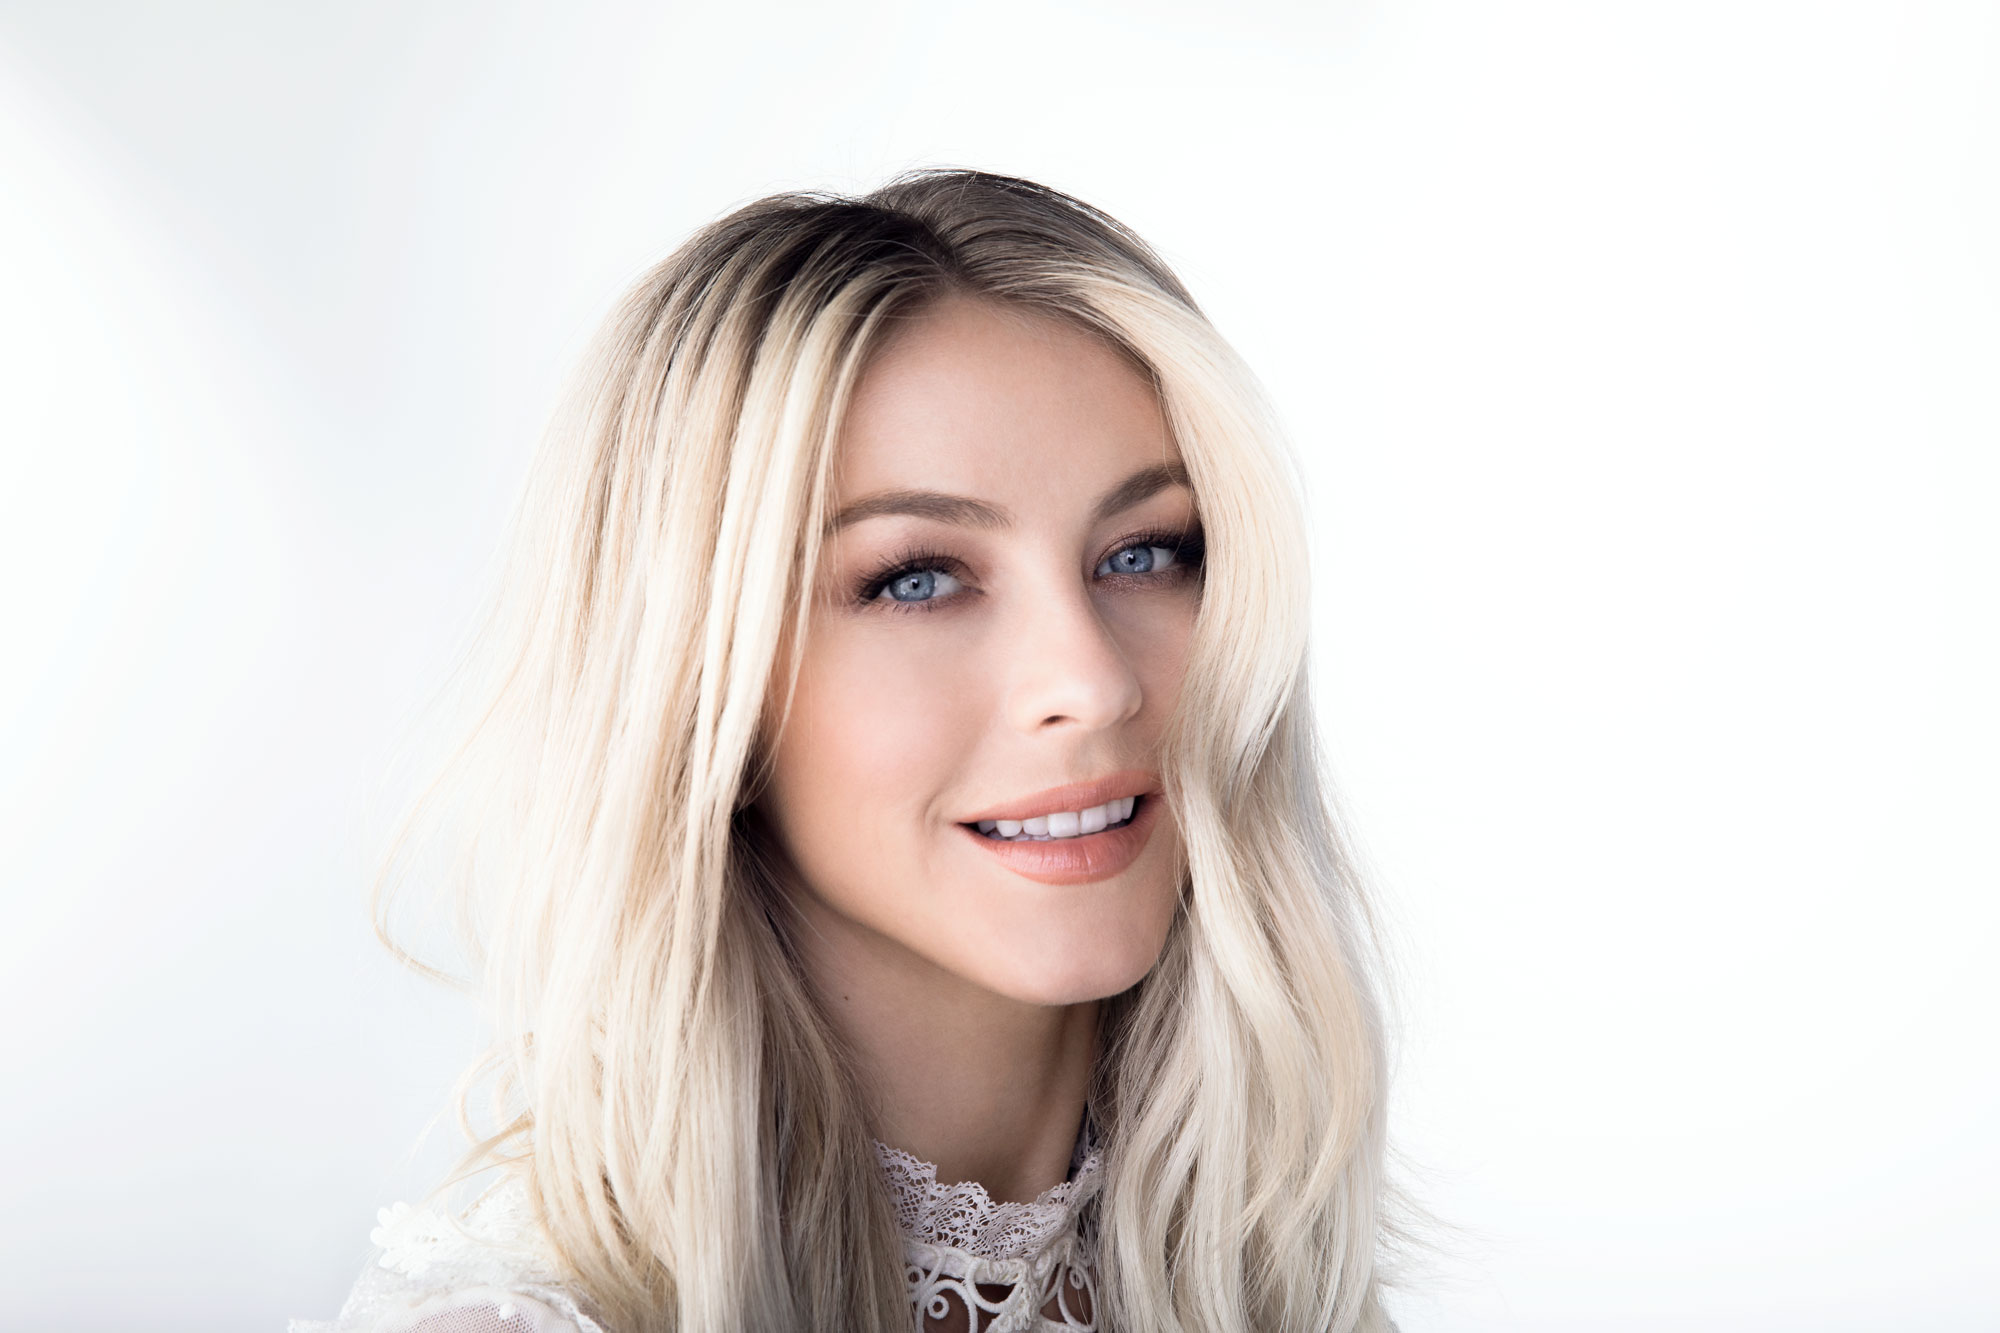 #MeinEndo w/Julianne Hough for Medical Dynamics + AbbVie  - Campaign Photography